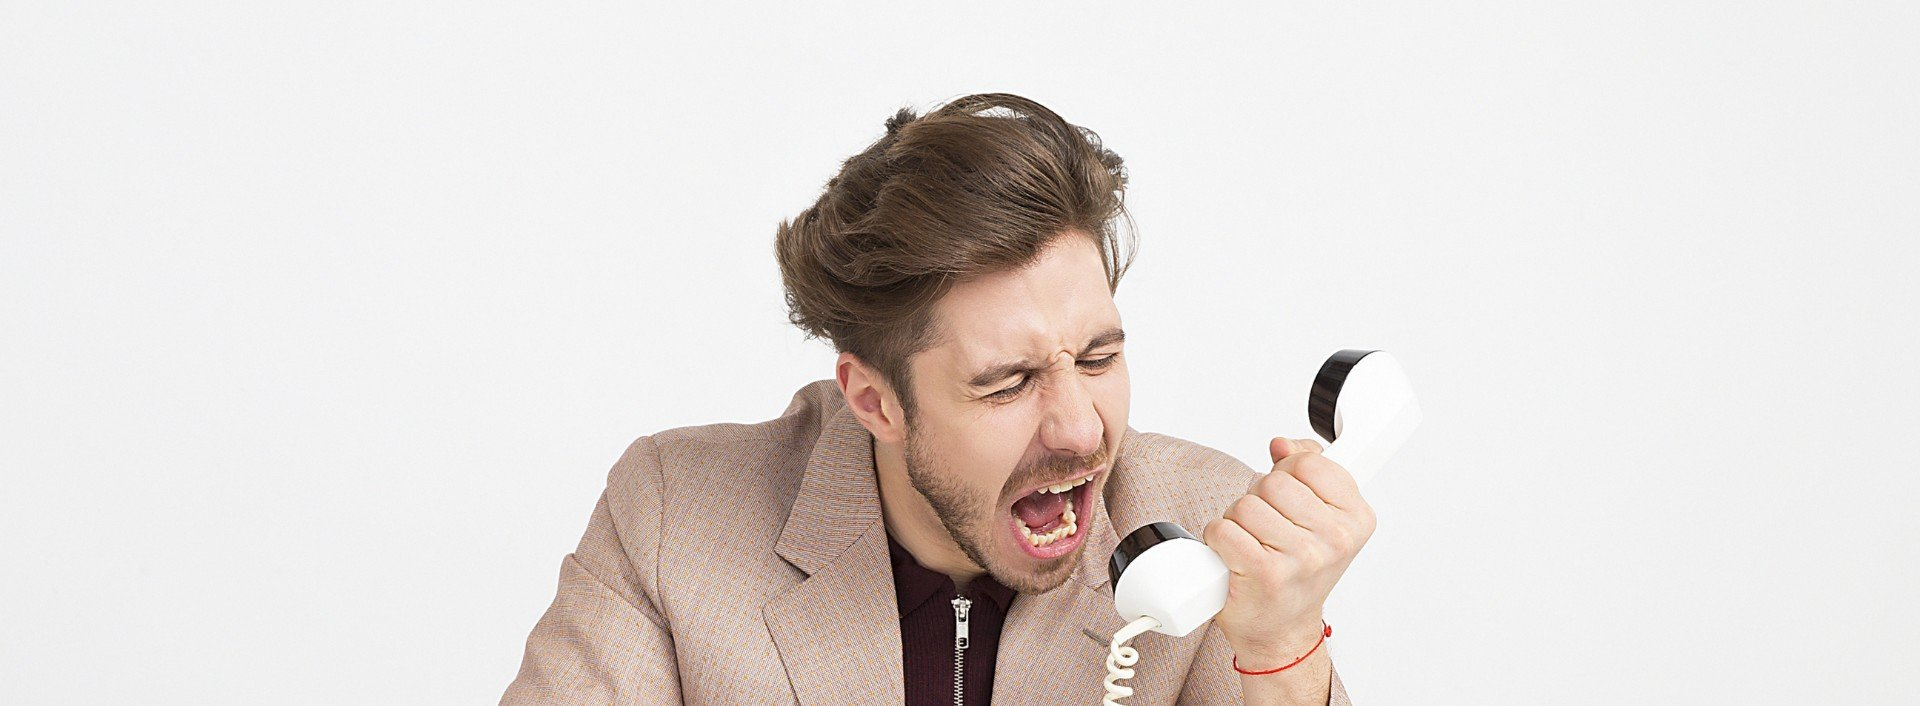 A man sitting at a desk, yelling into a white cord phone screaming in angry English.